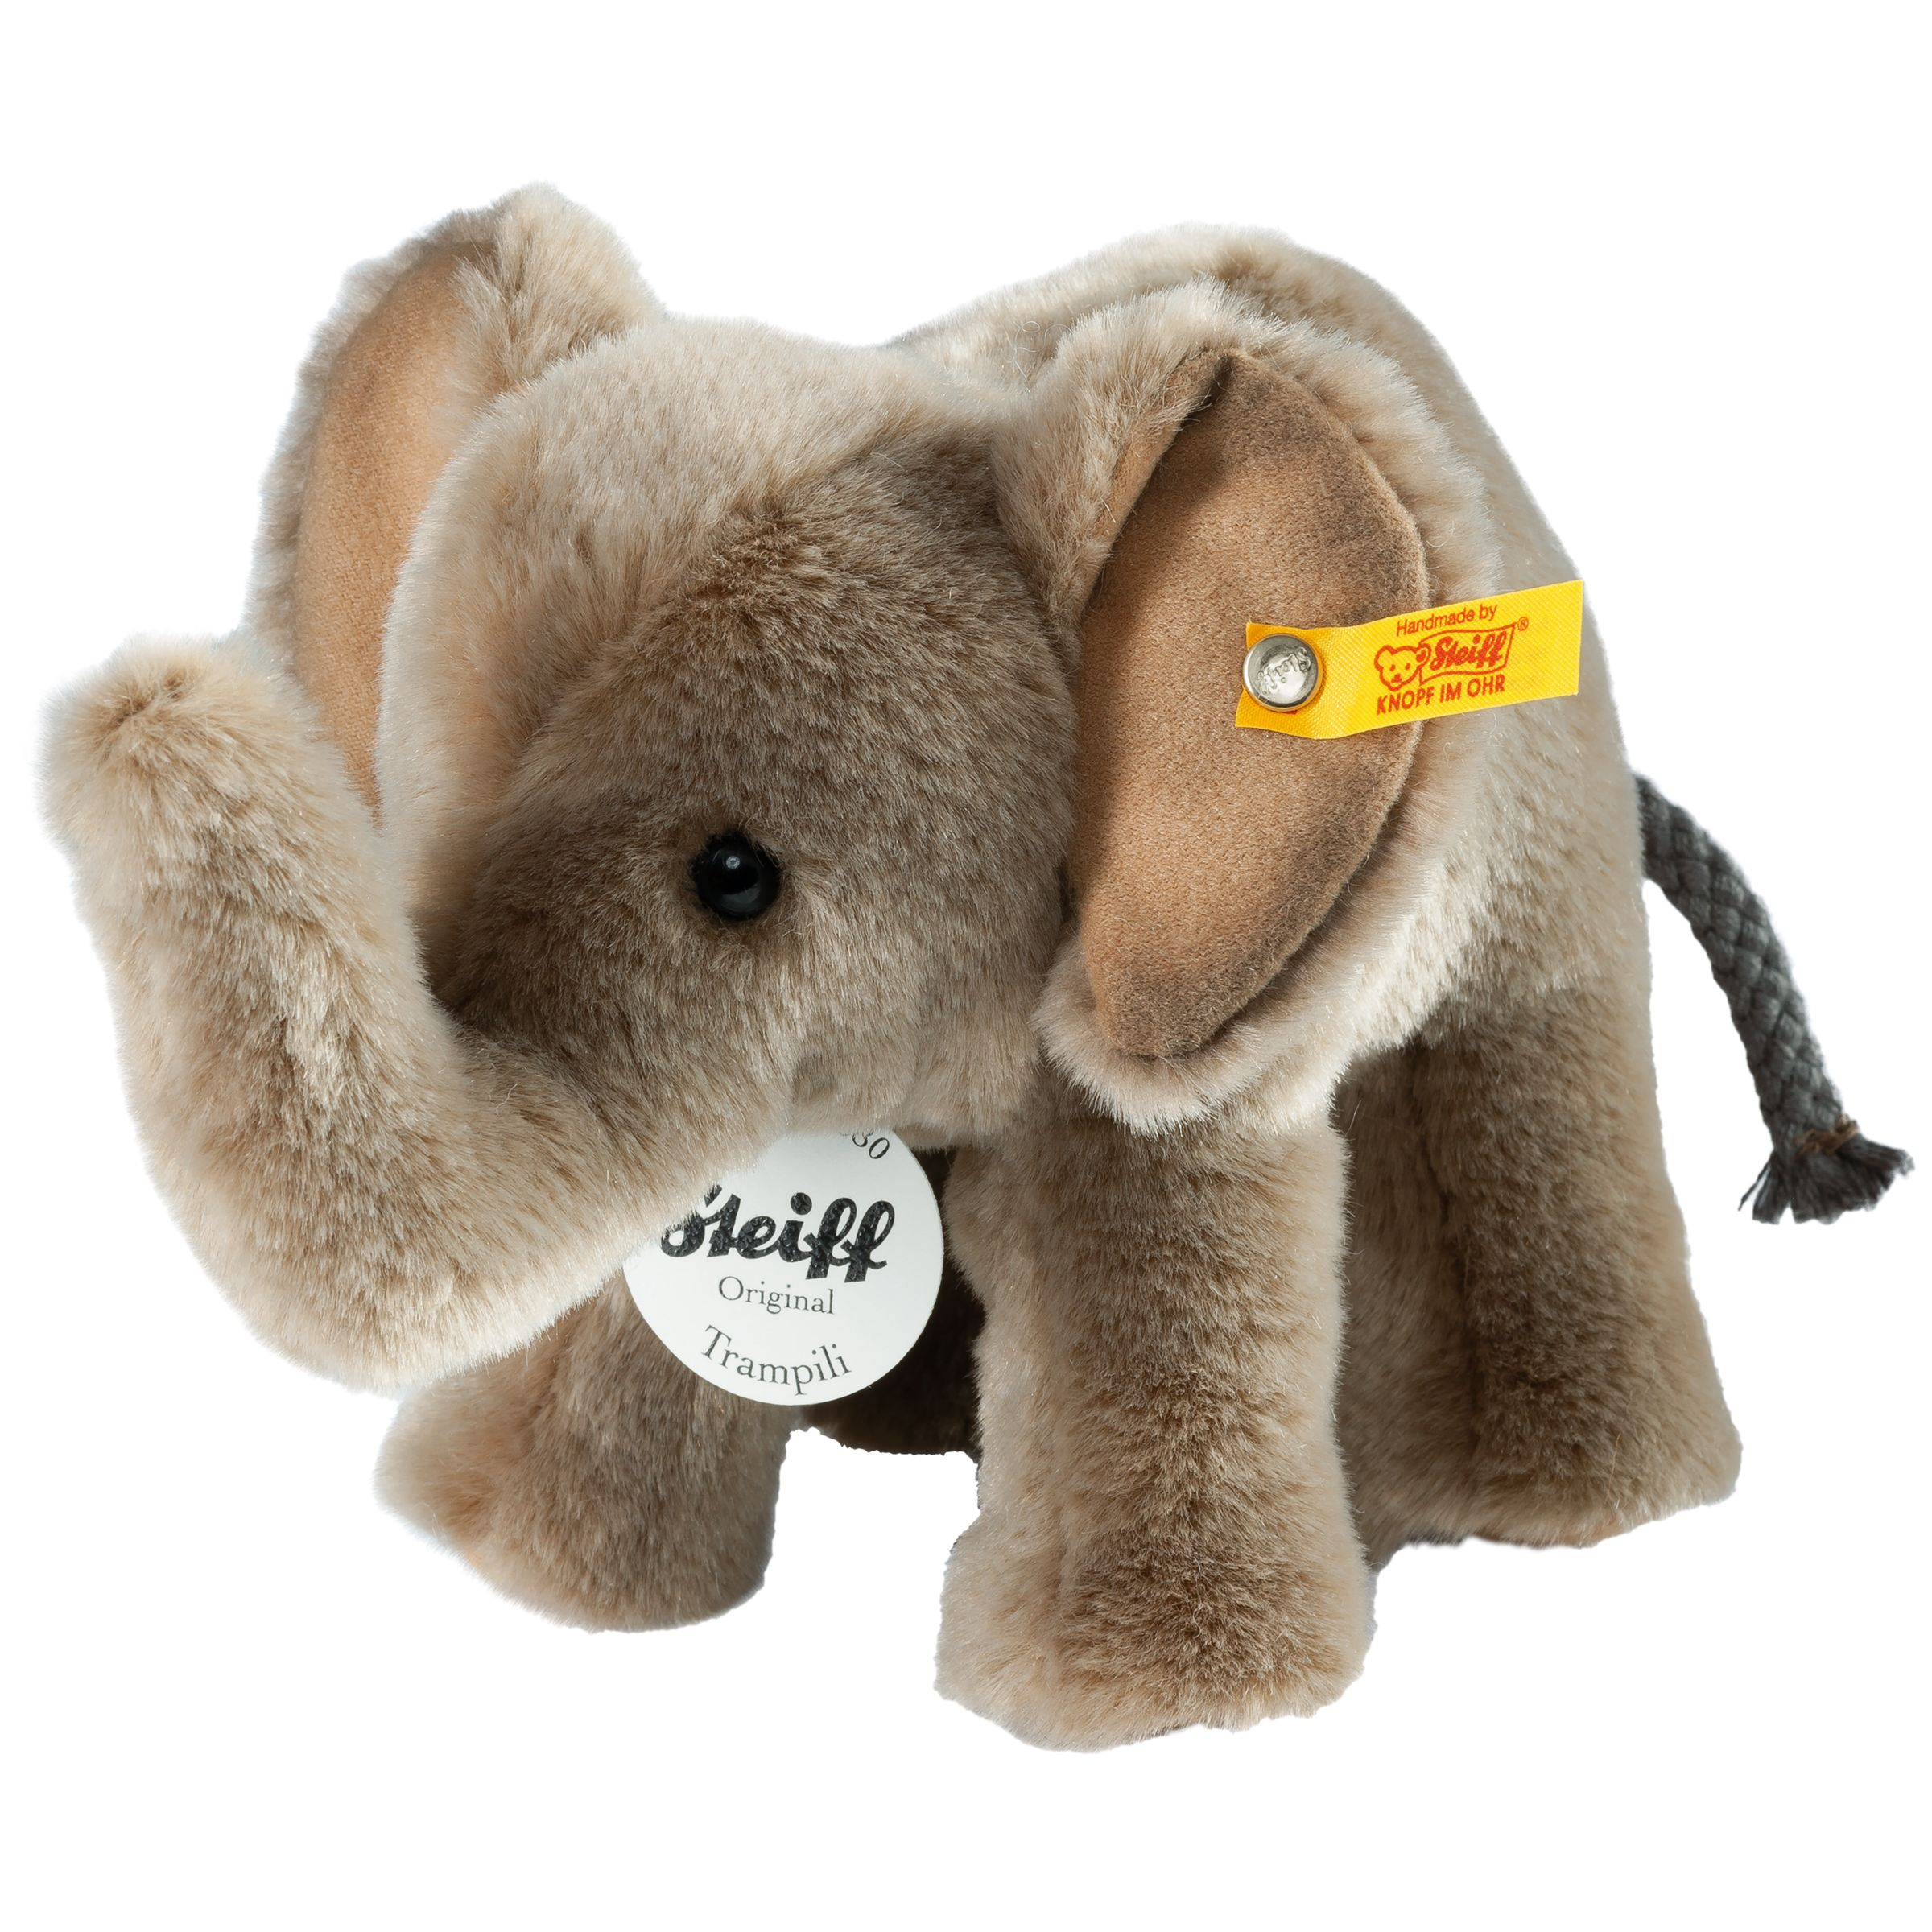 Steiff Steiff Trampili Elephant Plush Soft Toy